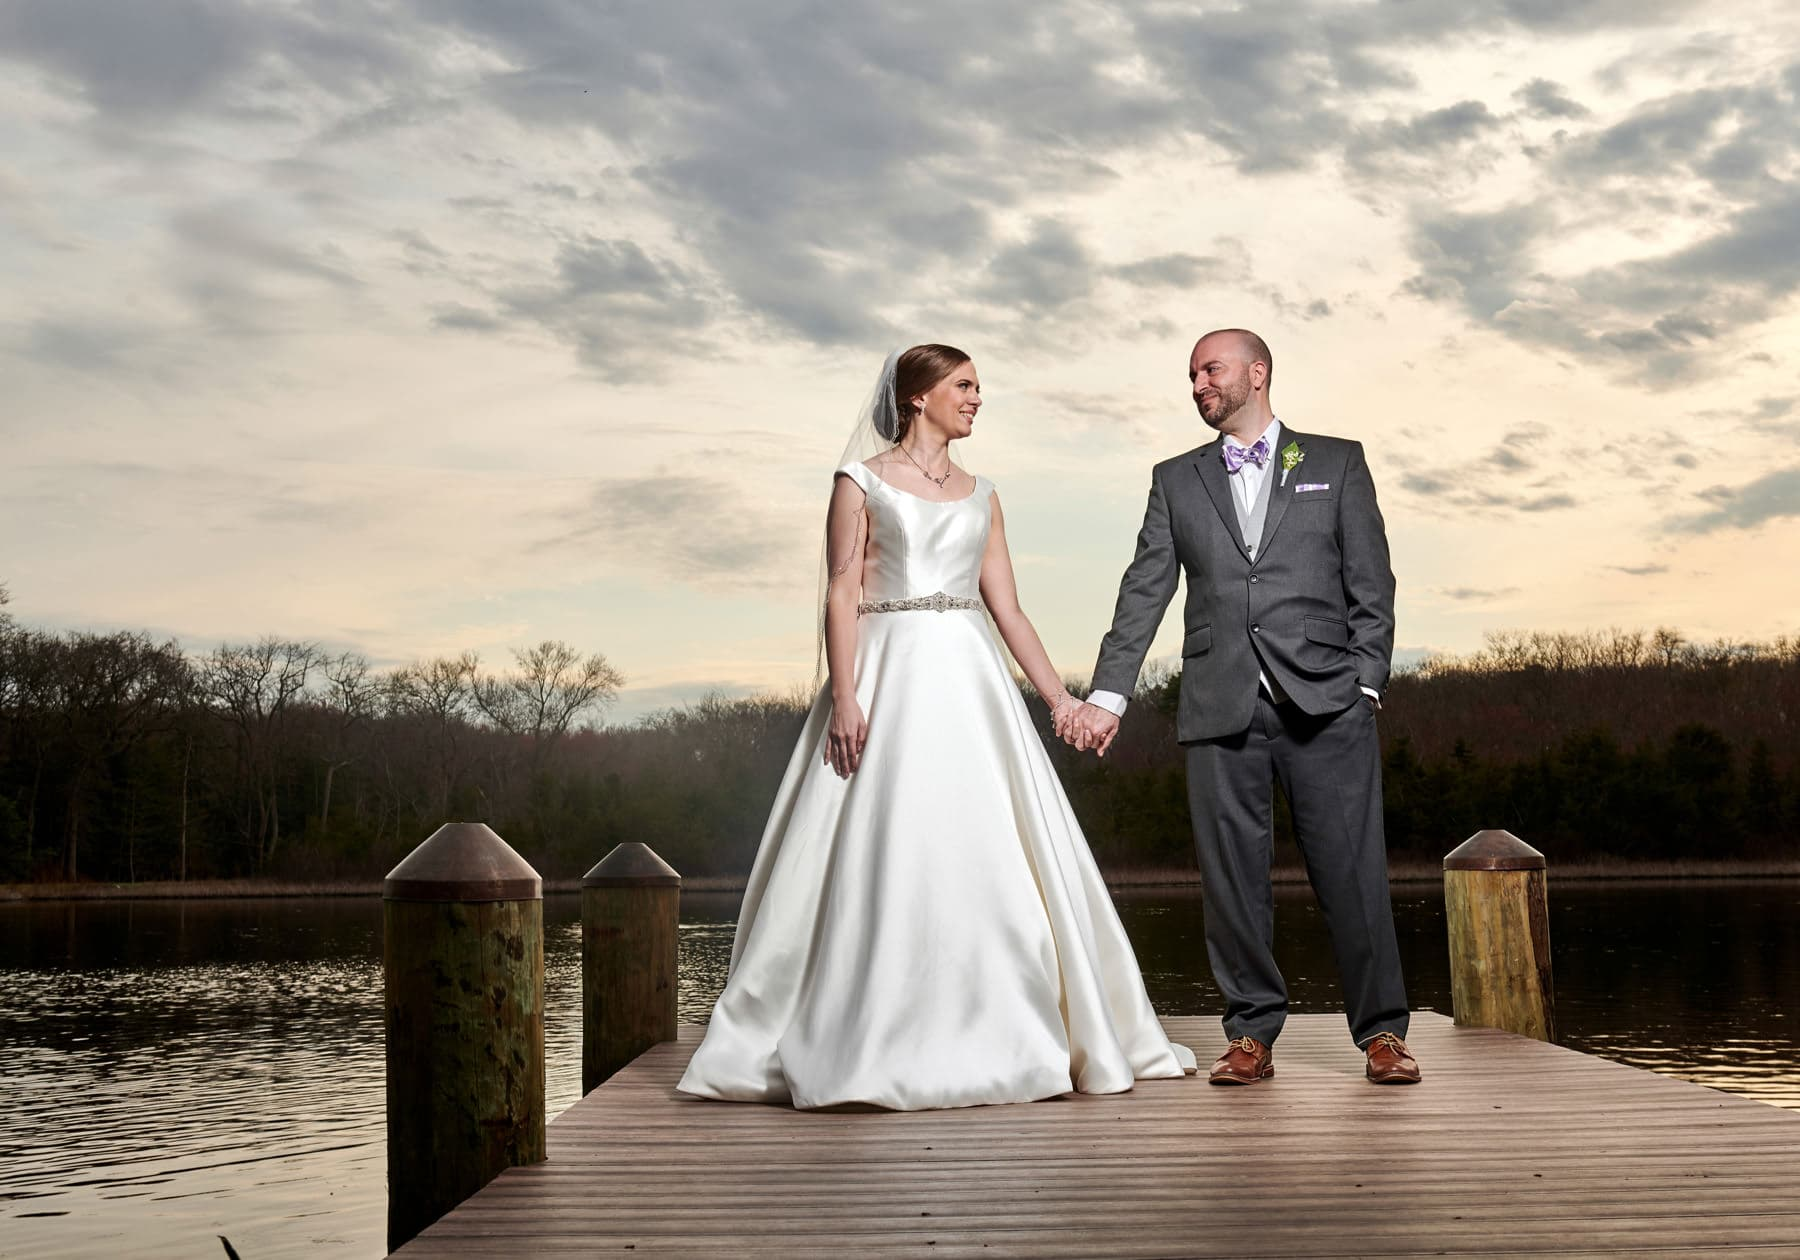 sunset wedding photo at The Mill lakeside Manor